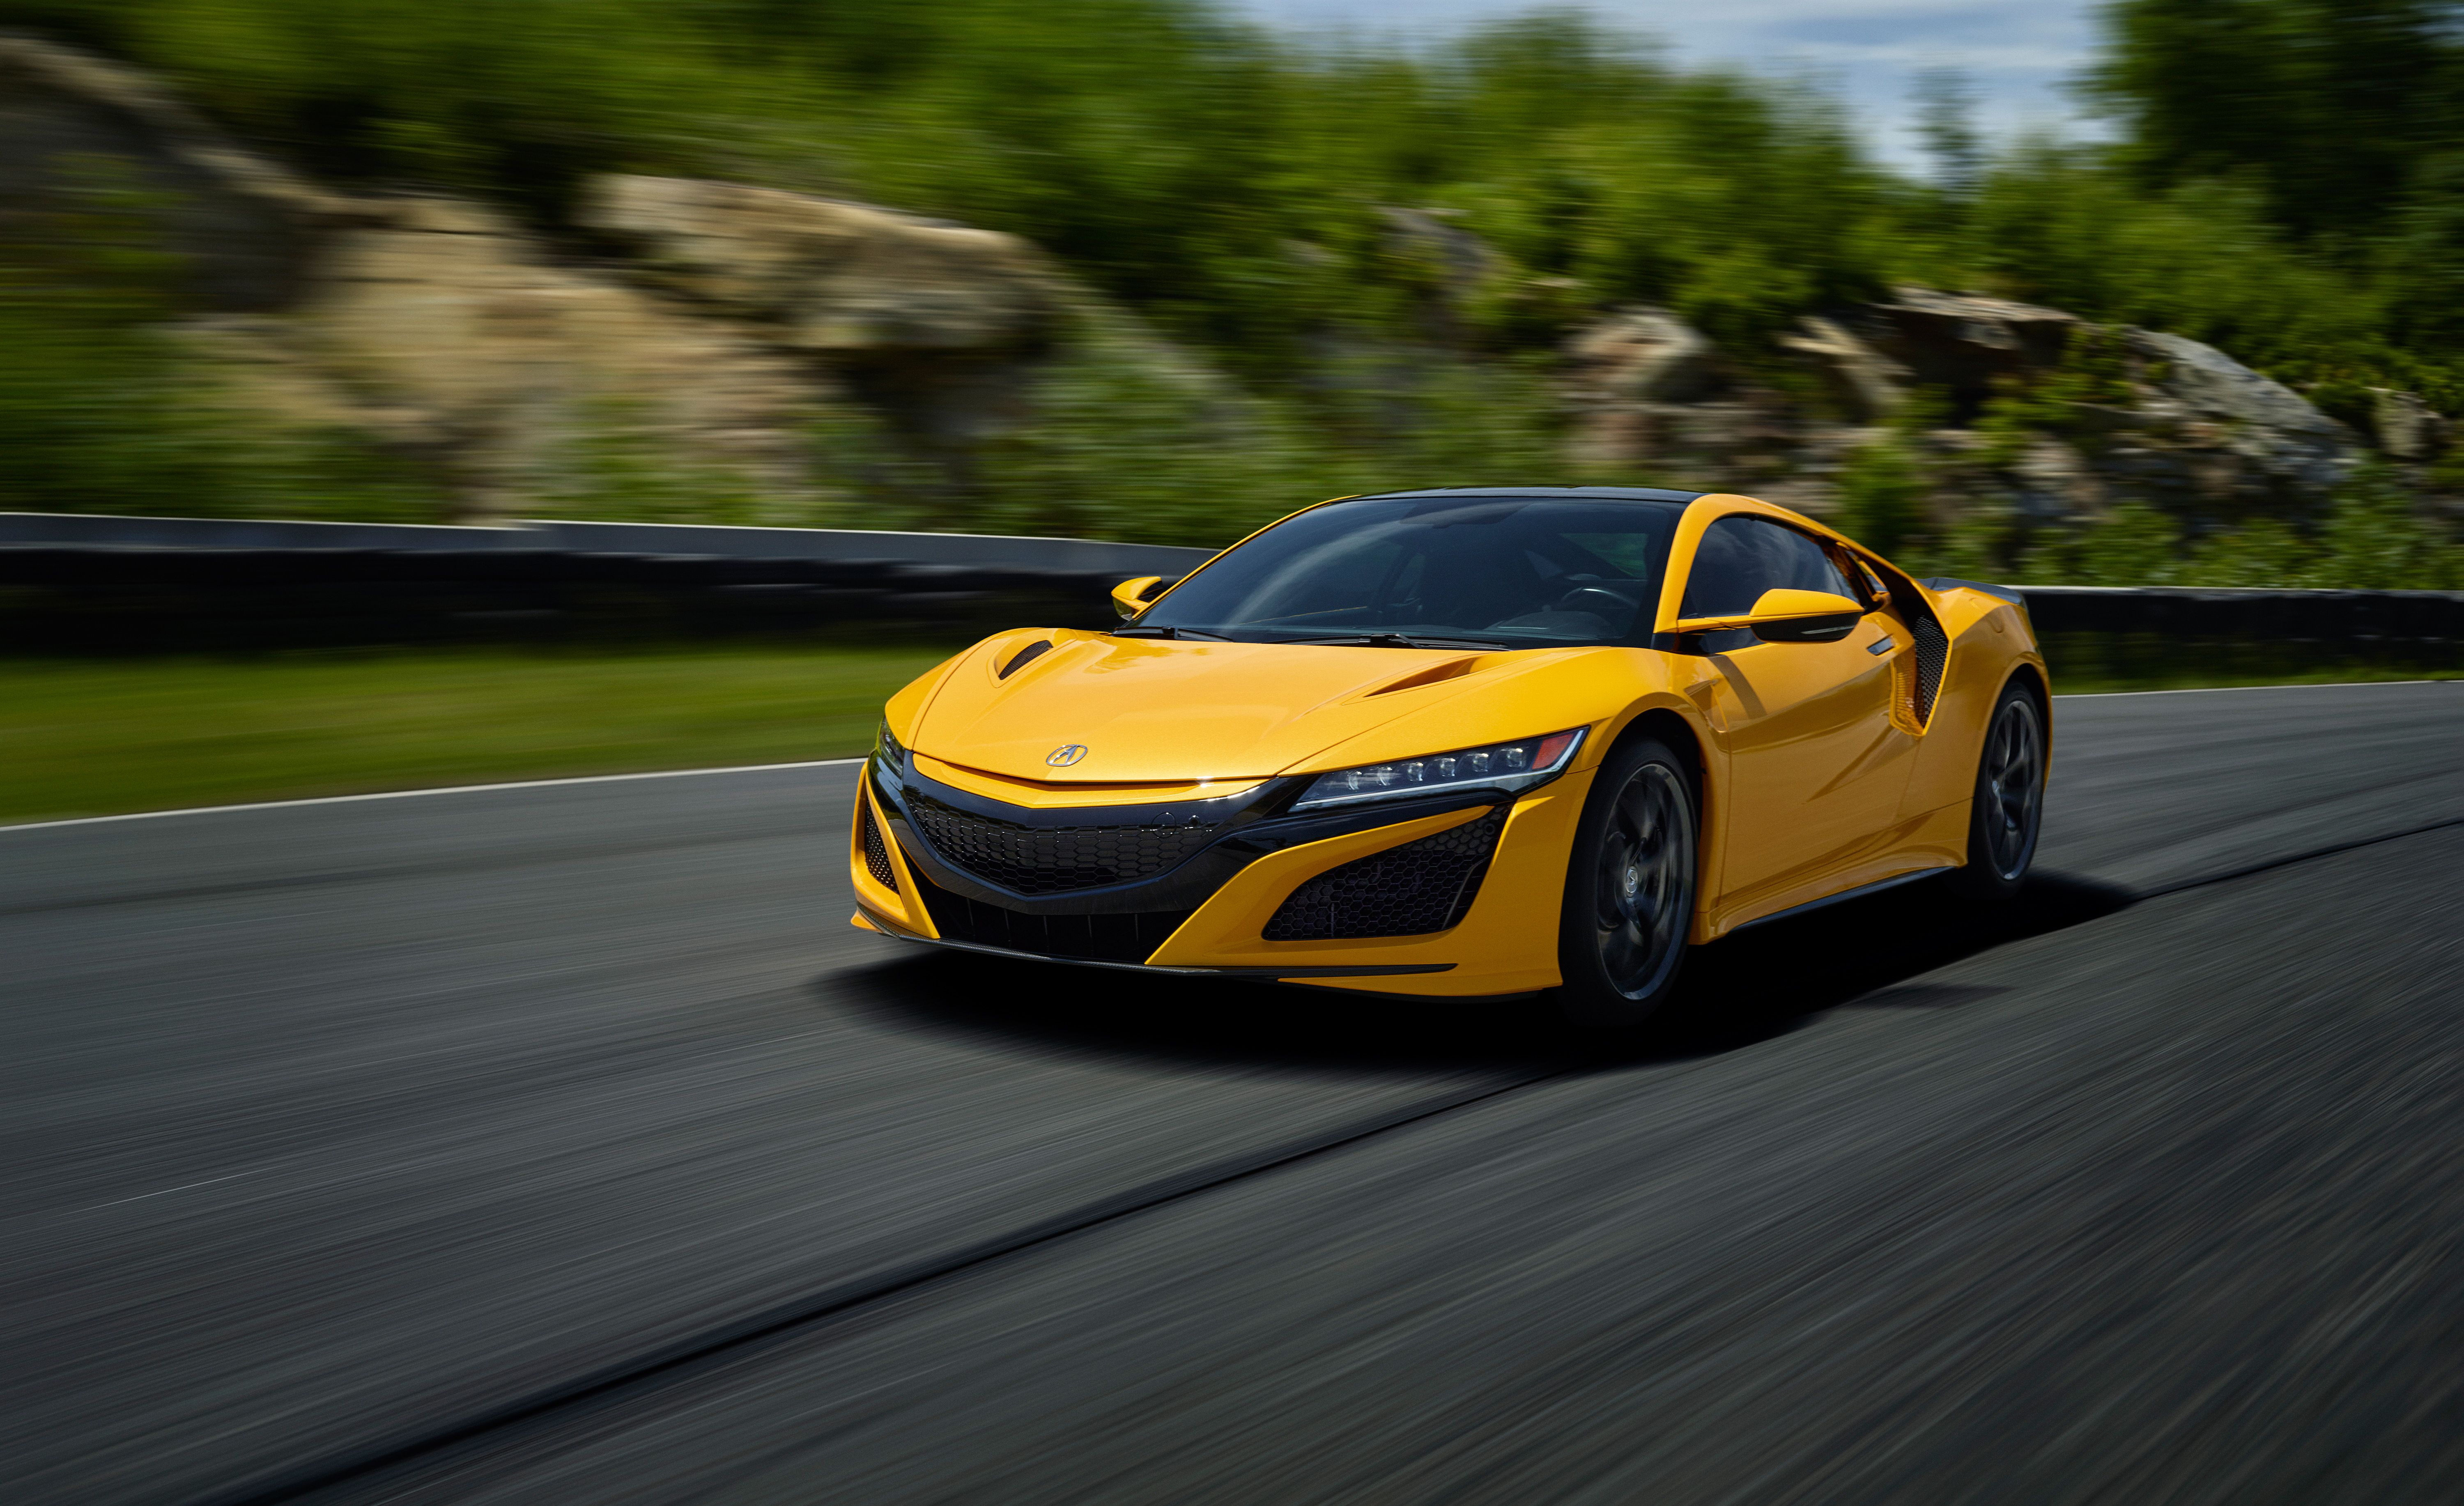 2020 Acura NSX Review, Pricing, and Specs